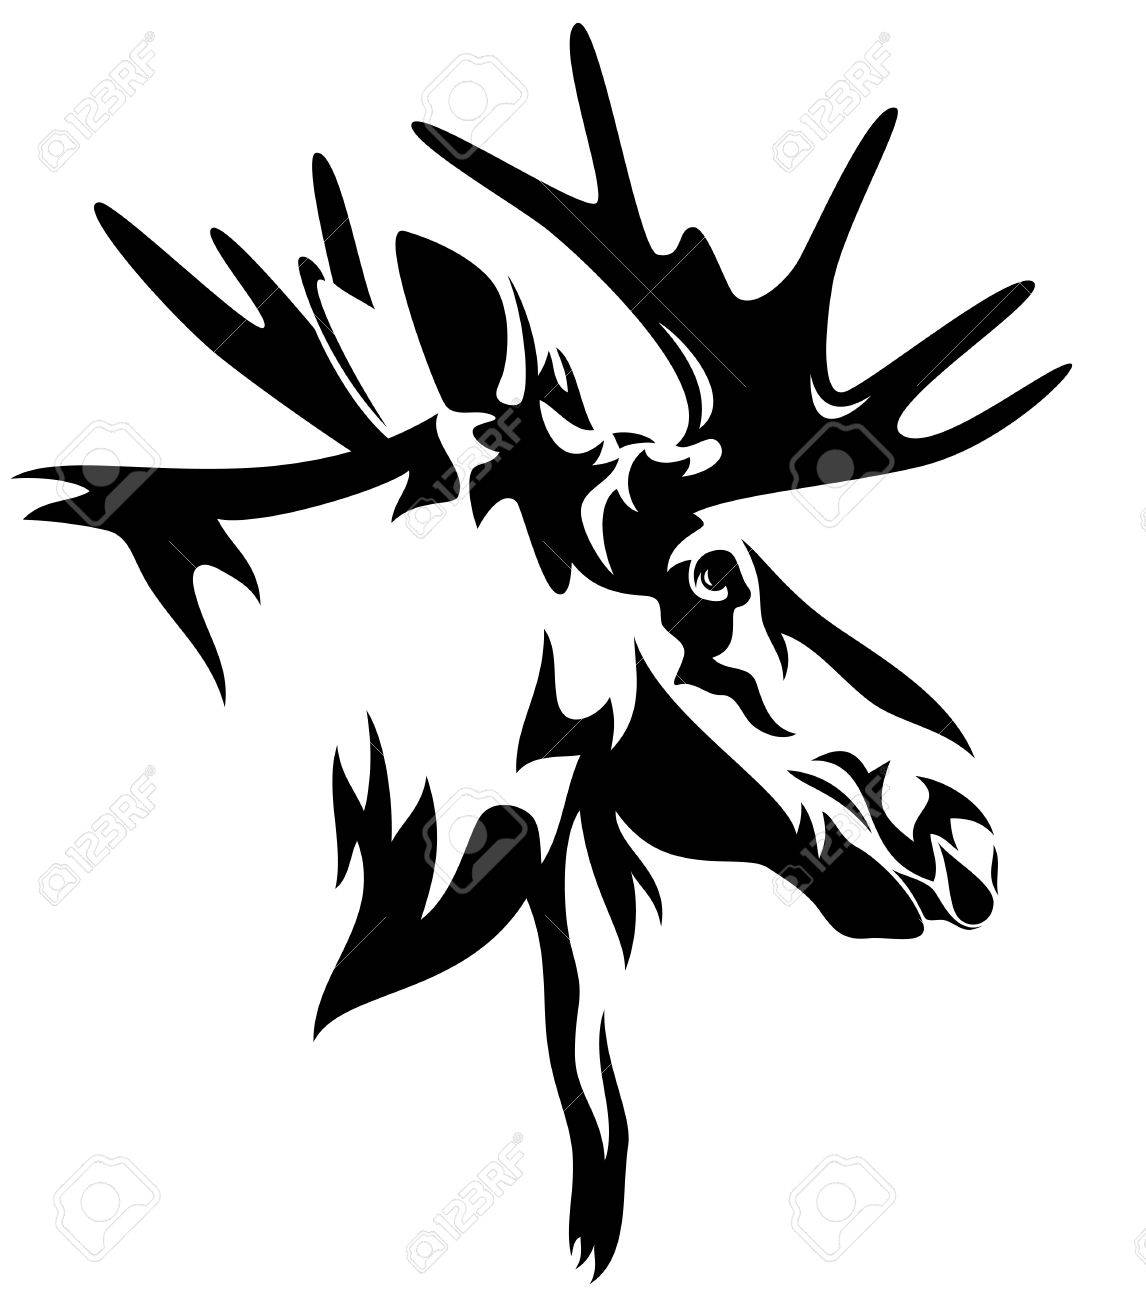 moose or elk Alces alces head black and white design - realistic animal outline - 27439259